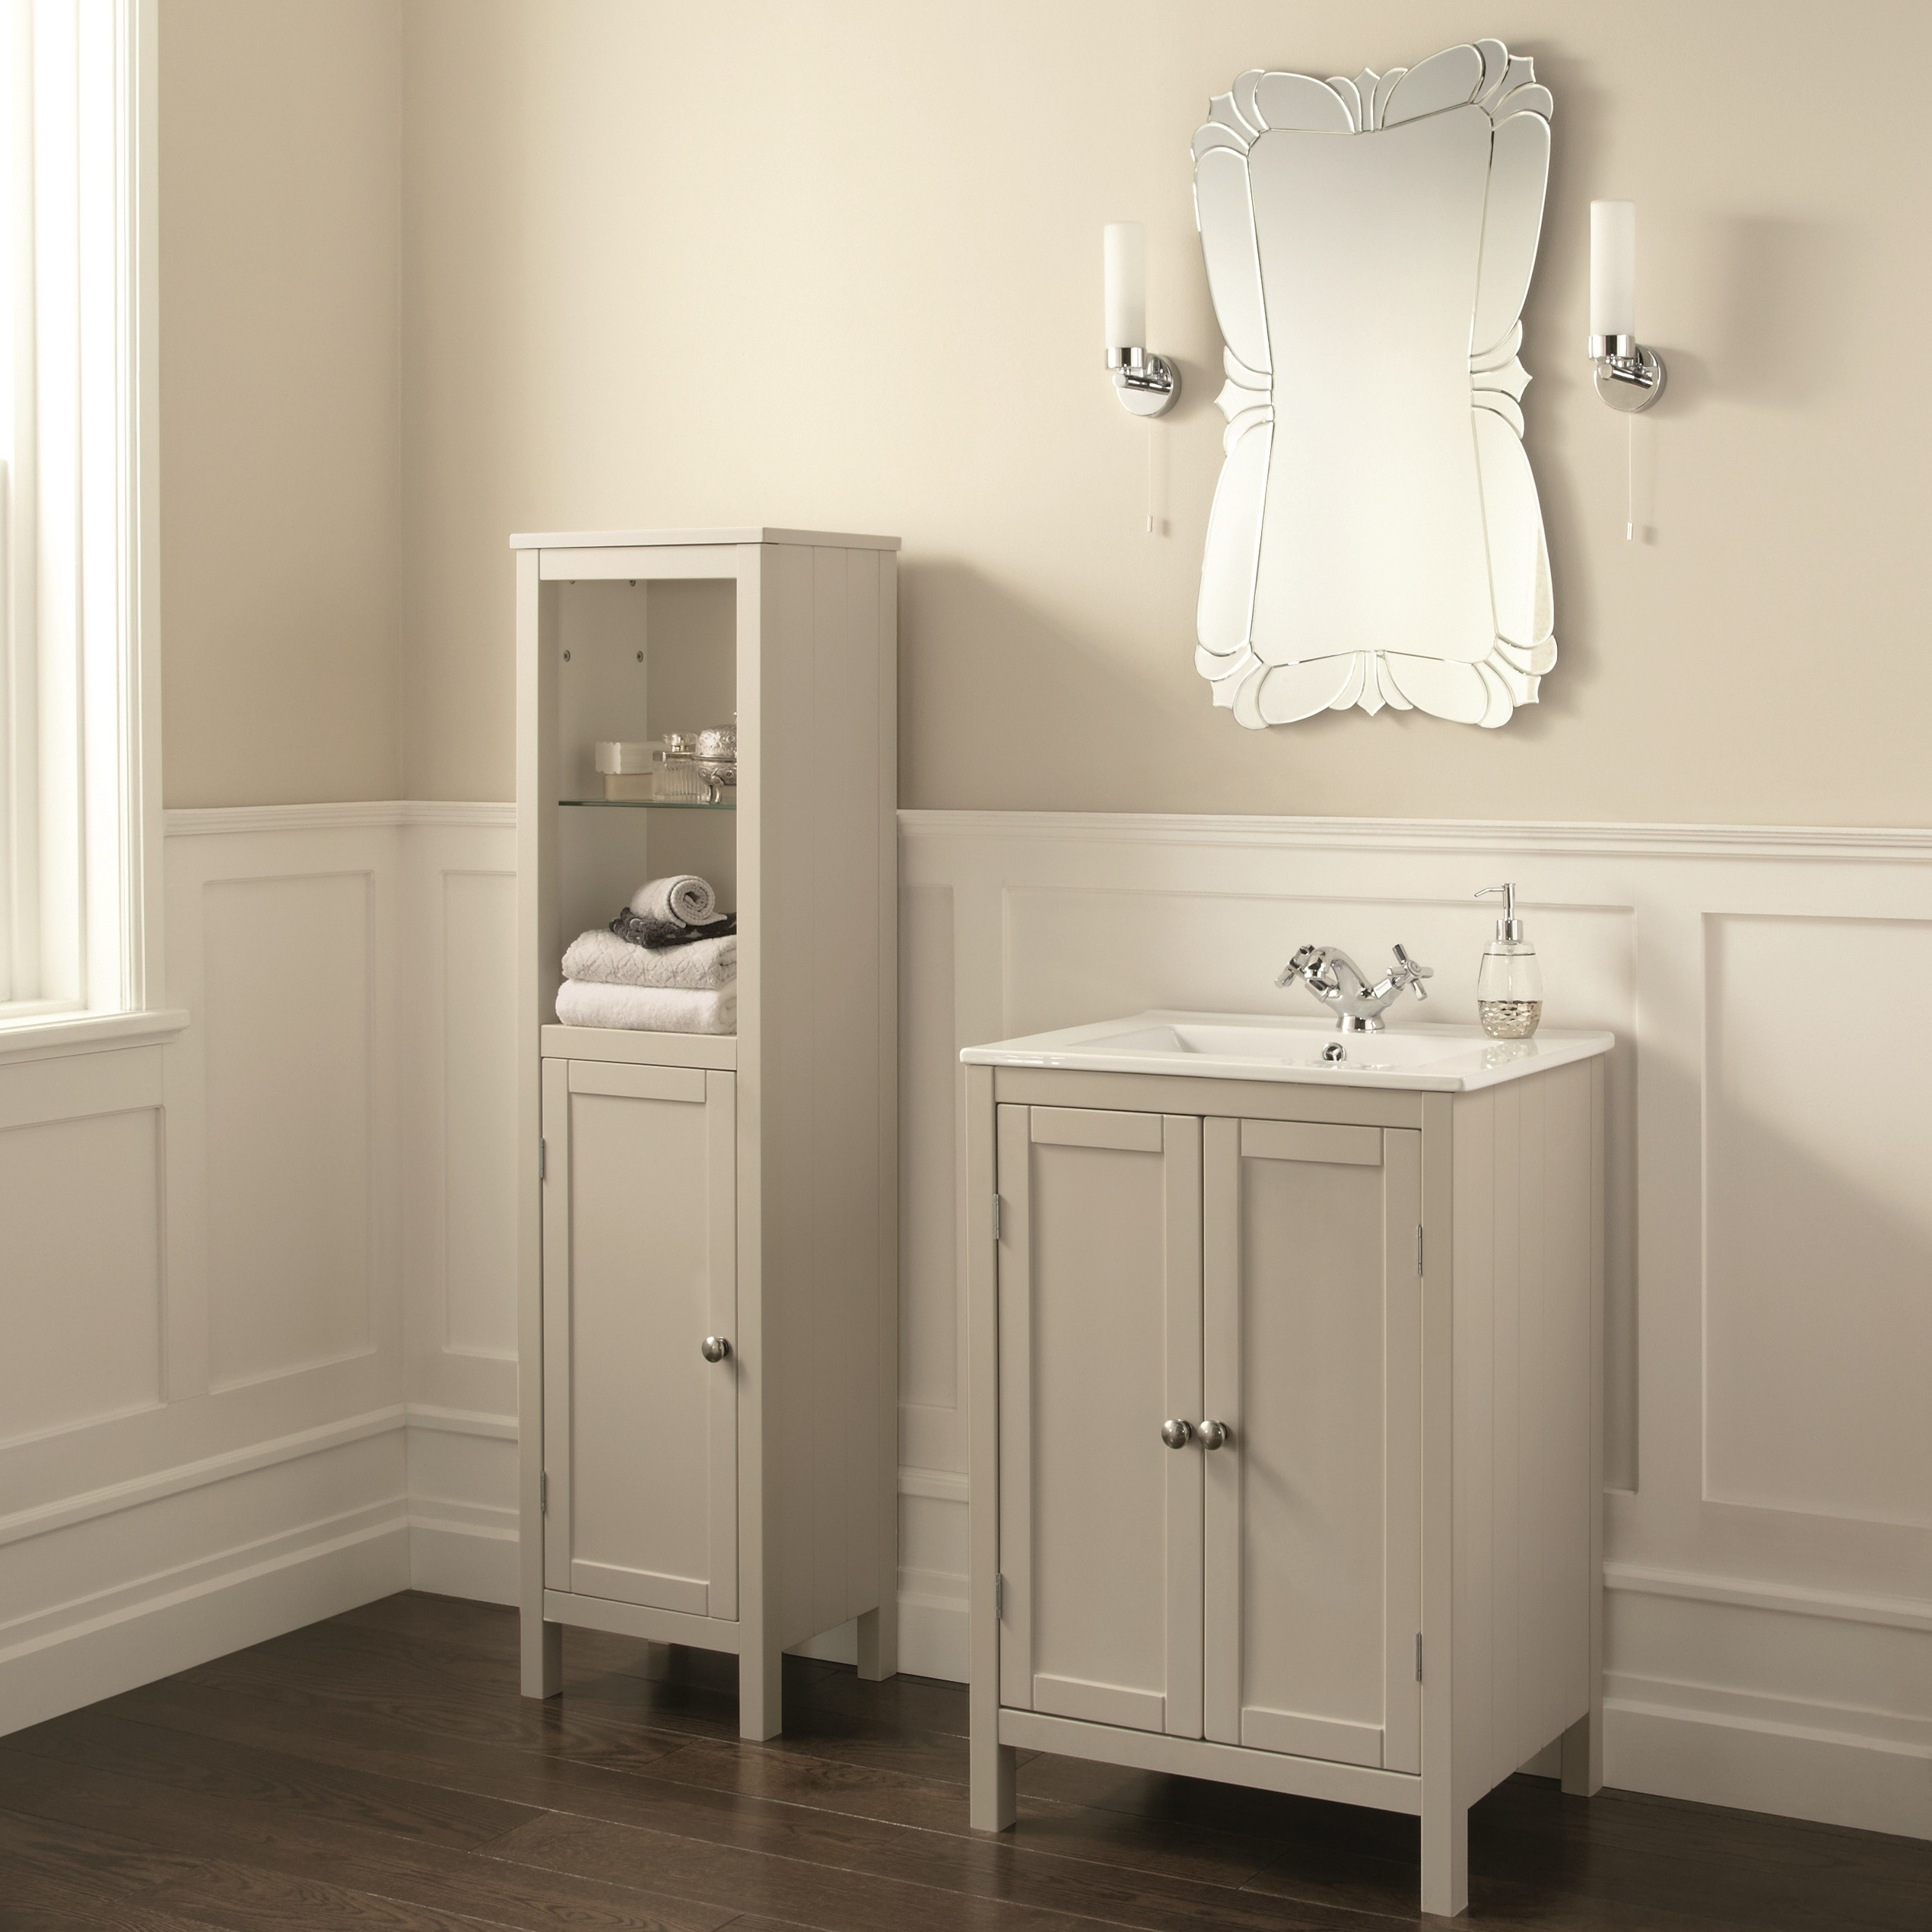 Cream Gloss Bathroom Vanity Unit